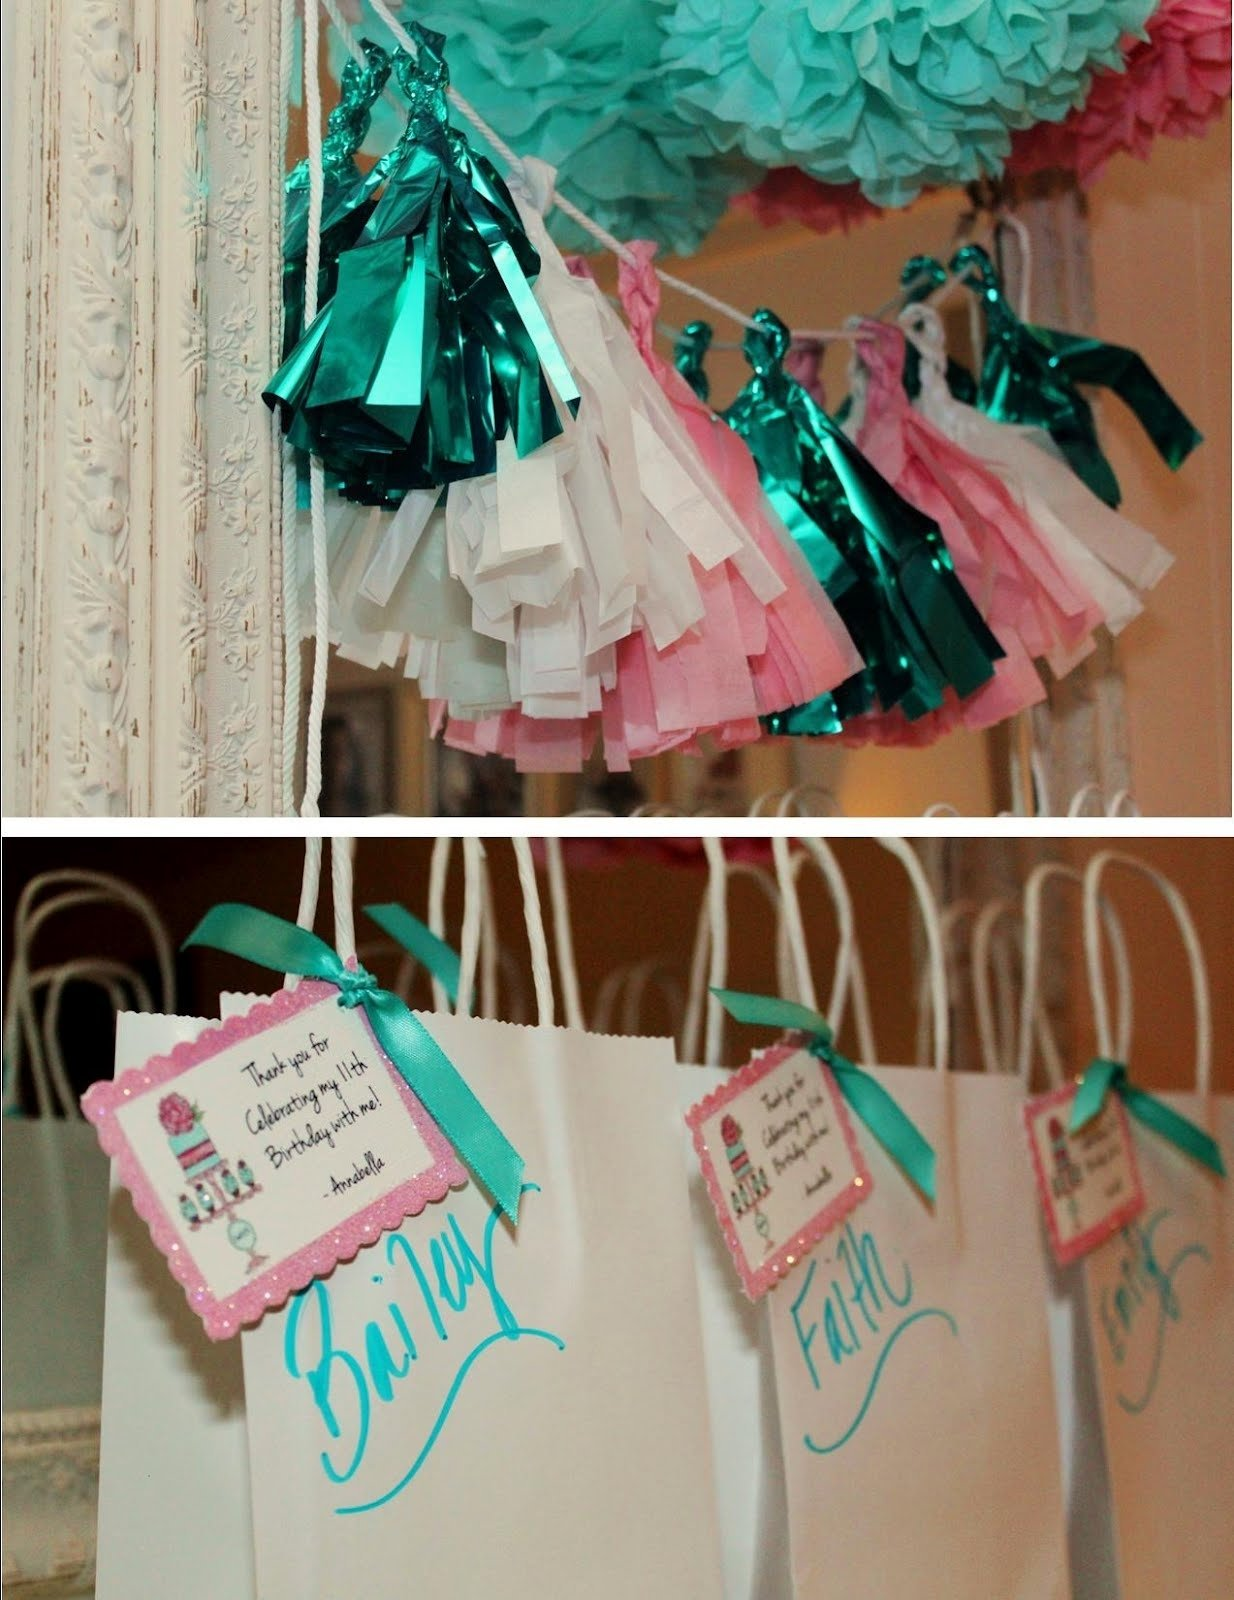 10 Fantastic Birthday Party Ideas For 11 Year Old Girl icing designs sweet sleepover 11th birthday party 1 2020